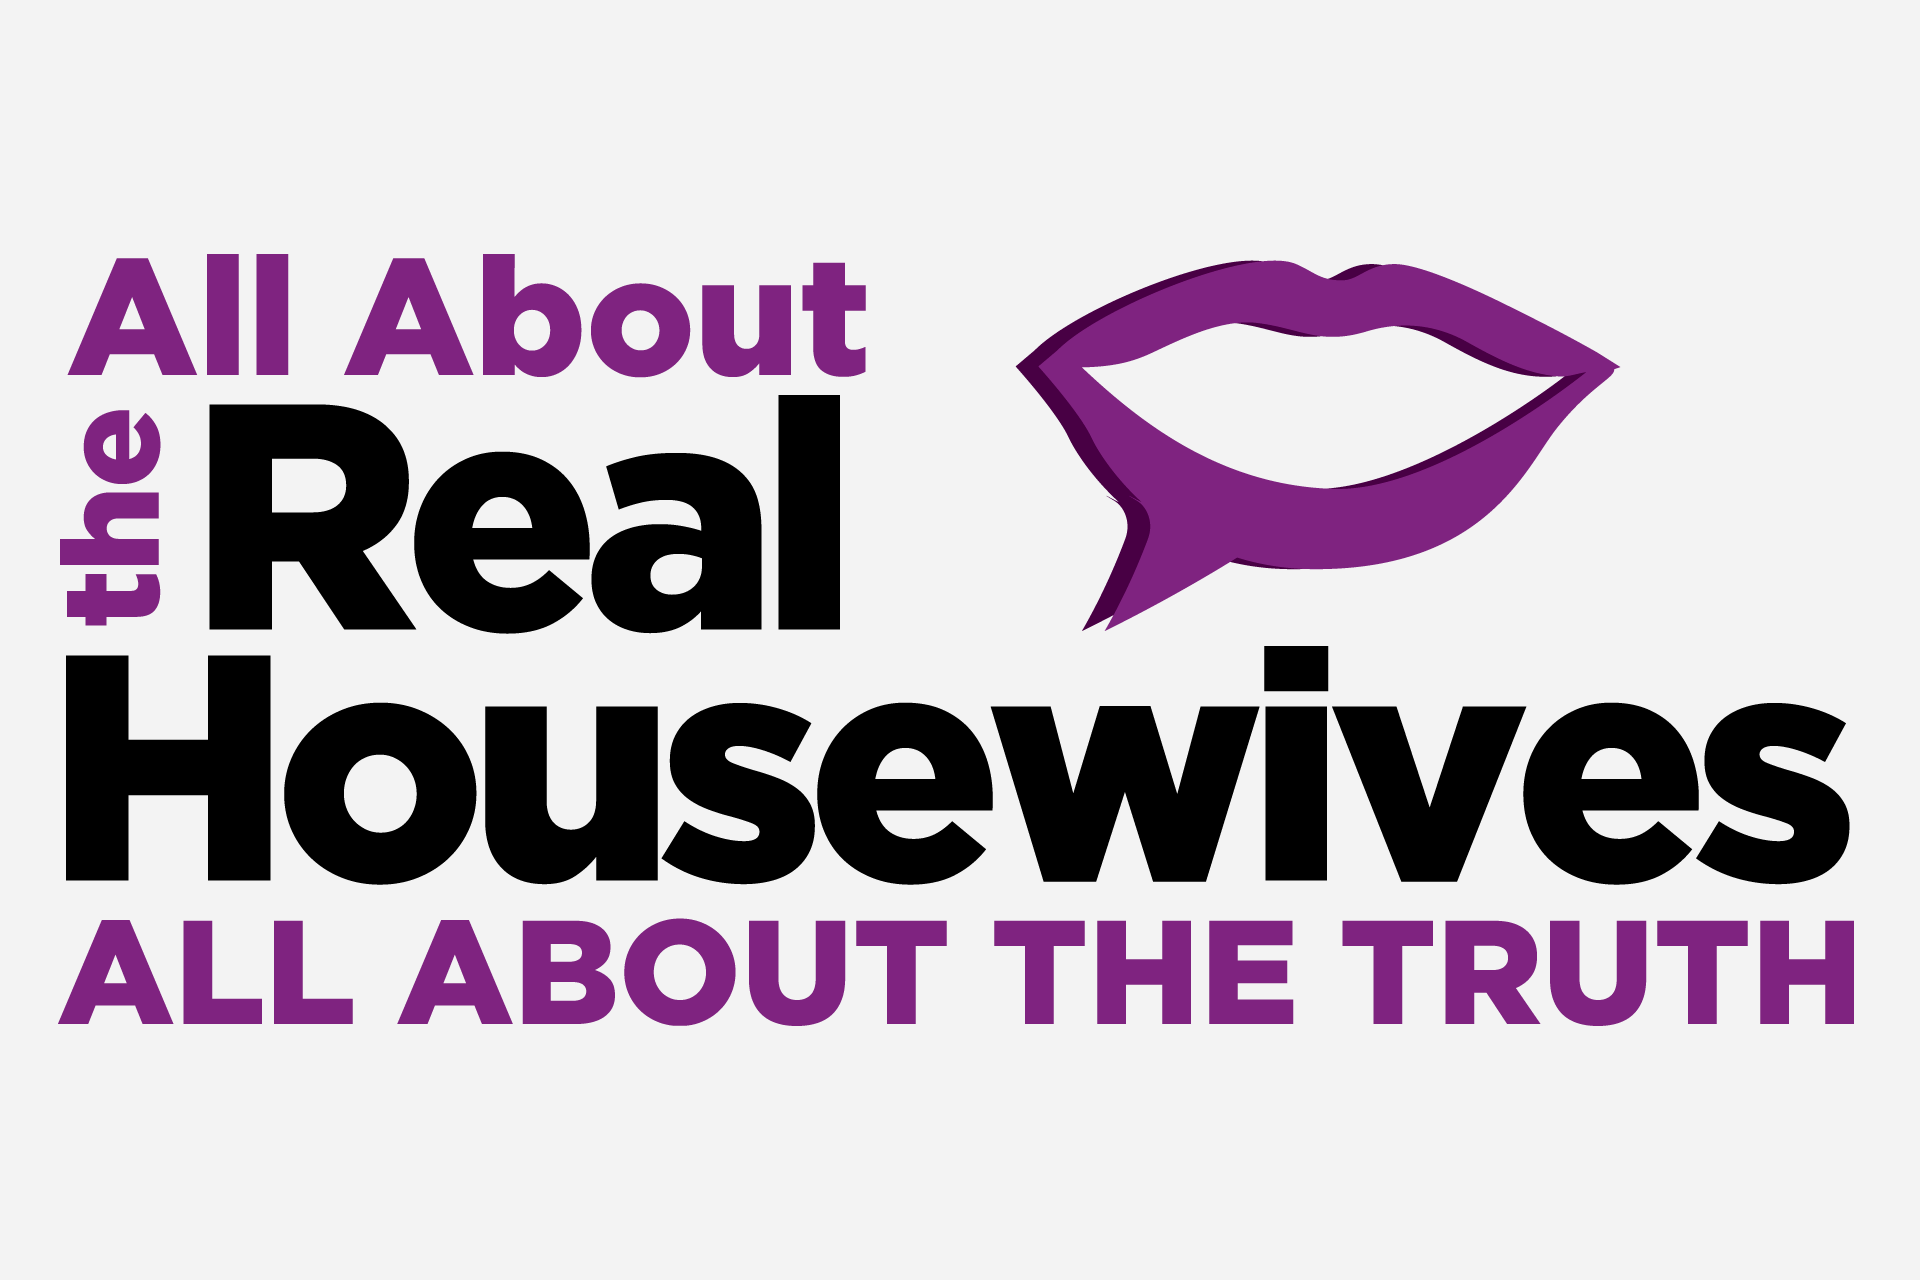 Real Housewives Of Atlanta Season 8 Trailer Released; Gets Premiere Date!